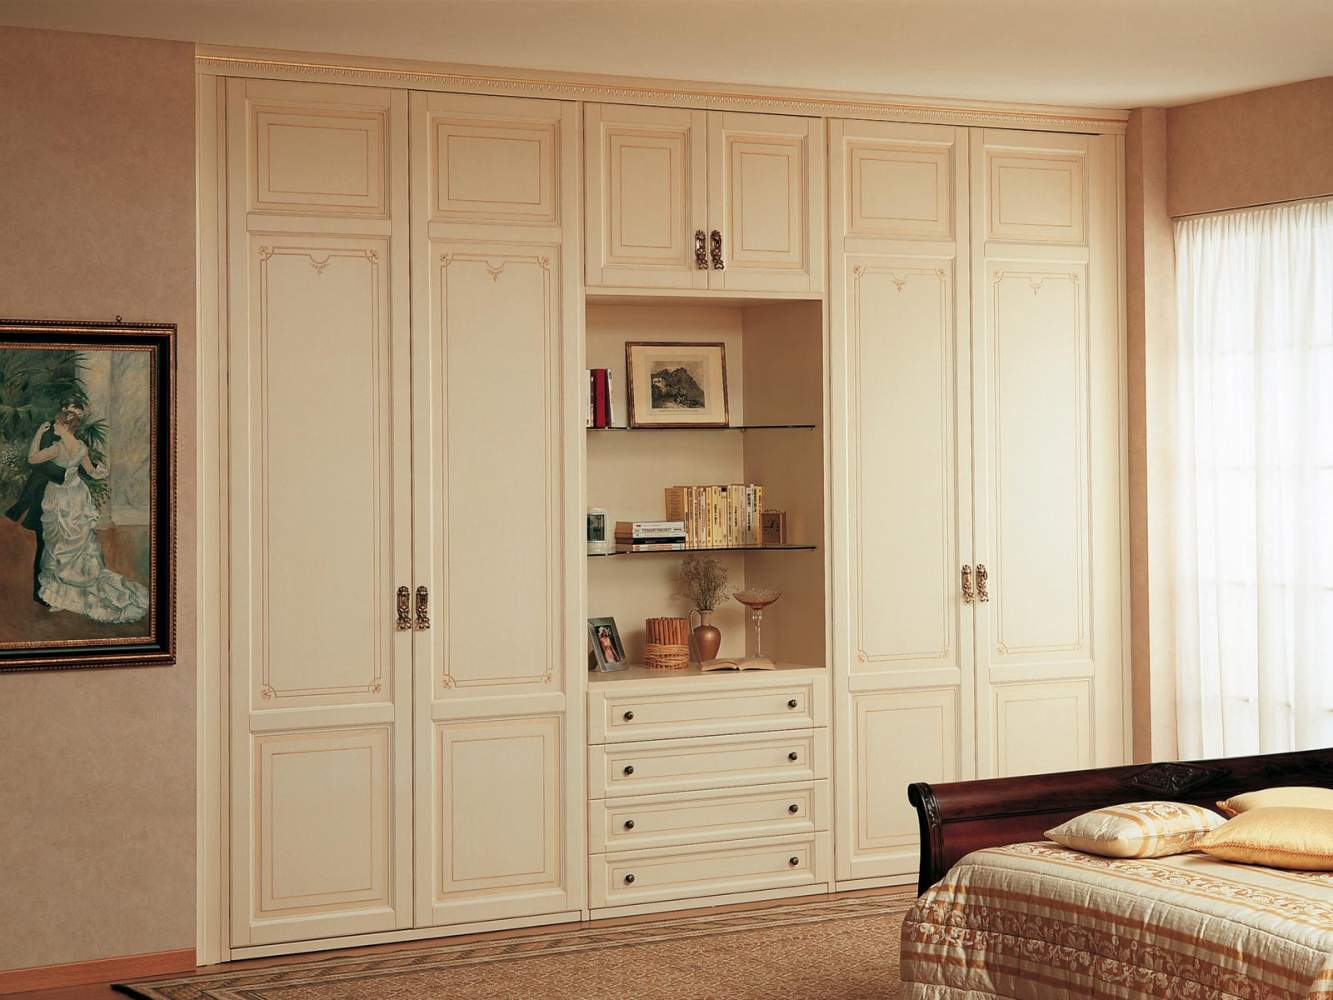 Modular wardrobe with open compartment